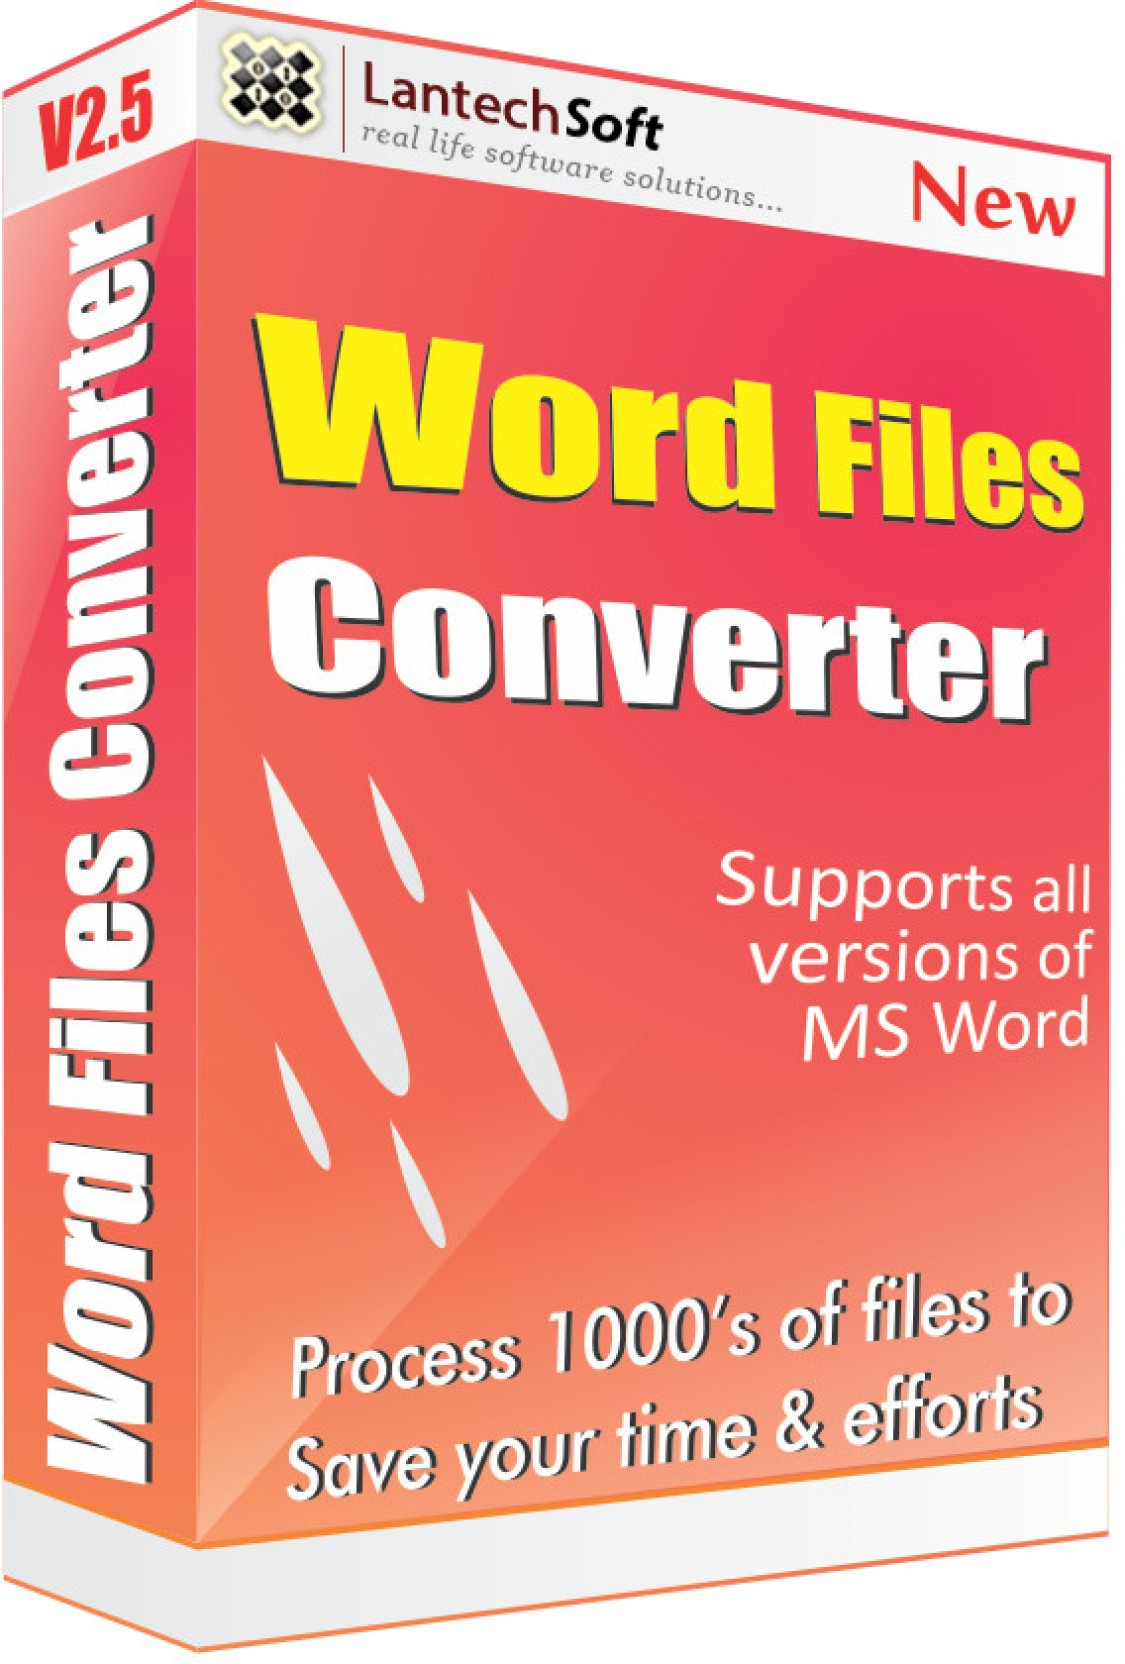 LantechSoft Total Word Files Converter Price in India - Buy